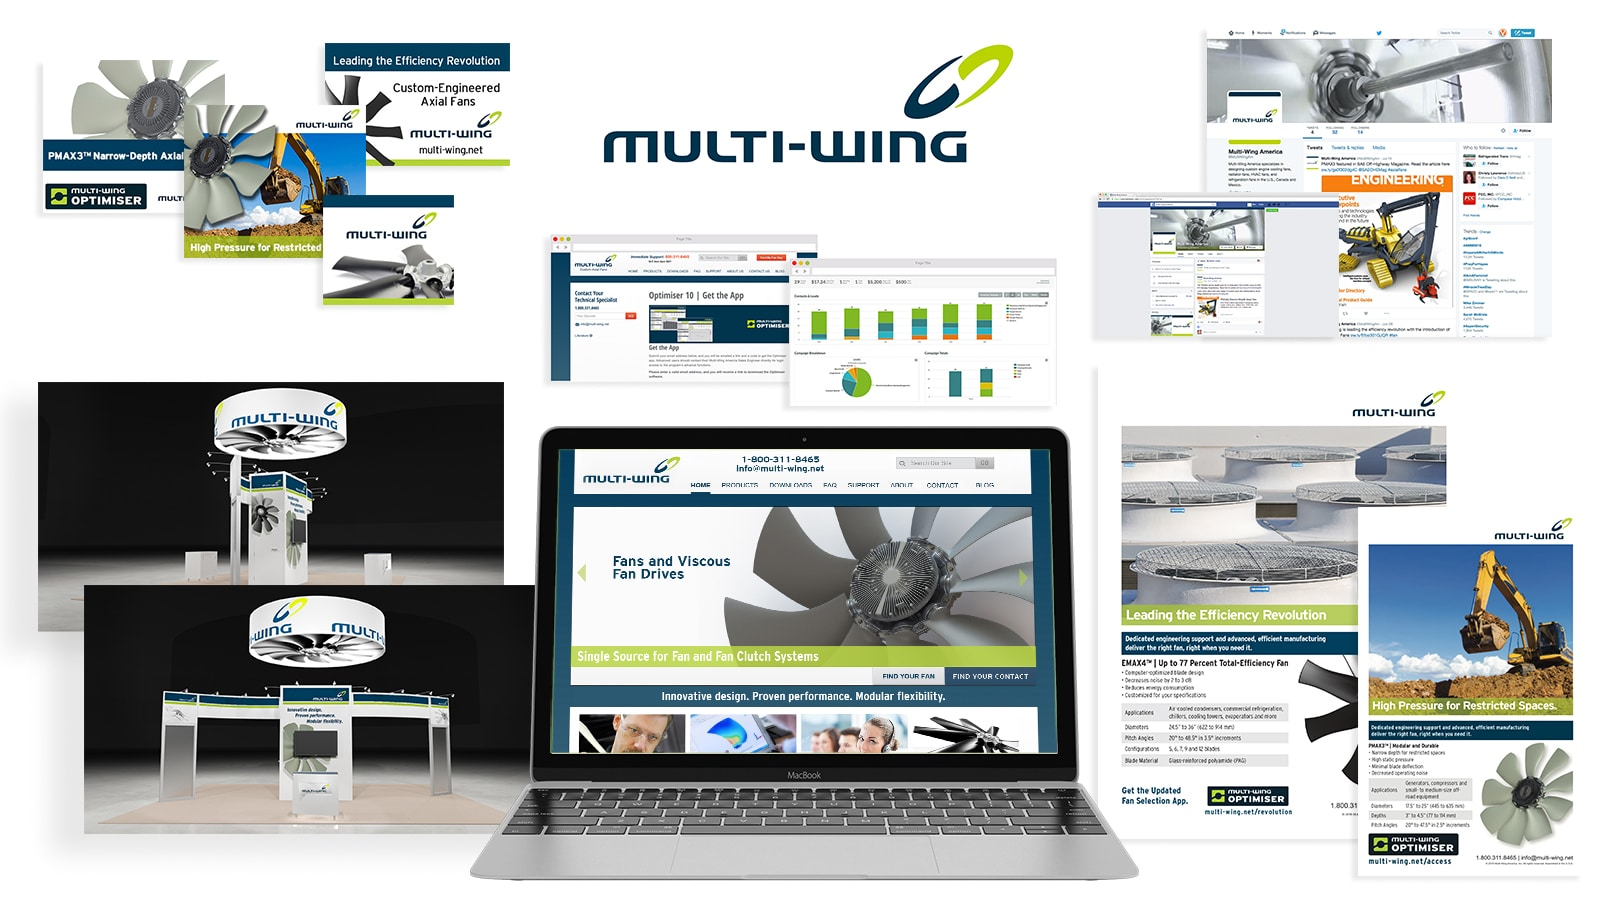 Multiwing